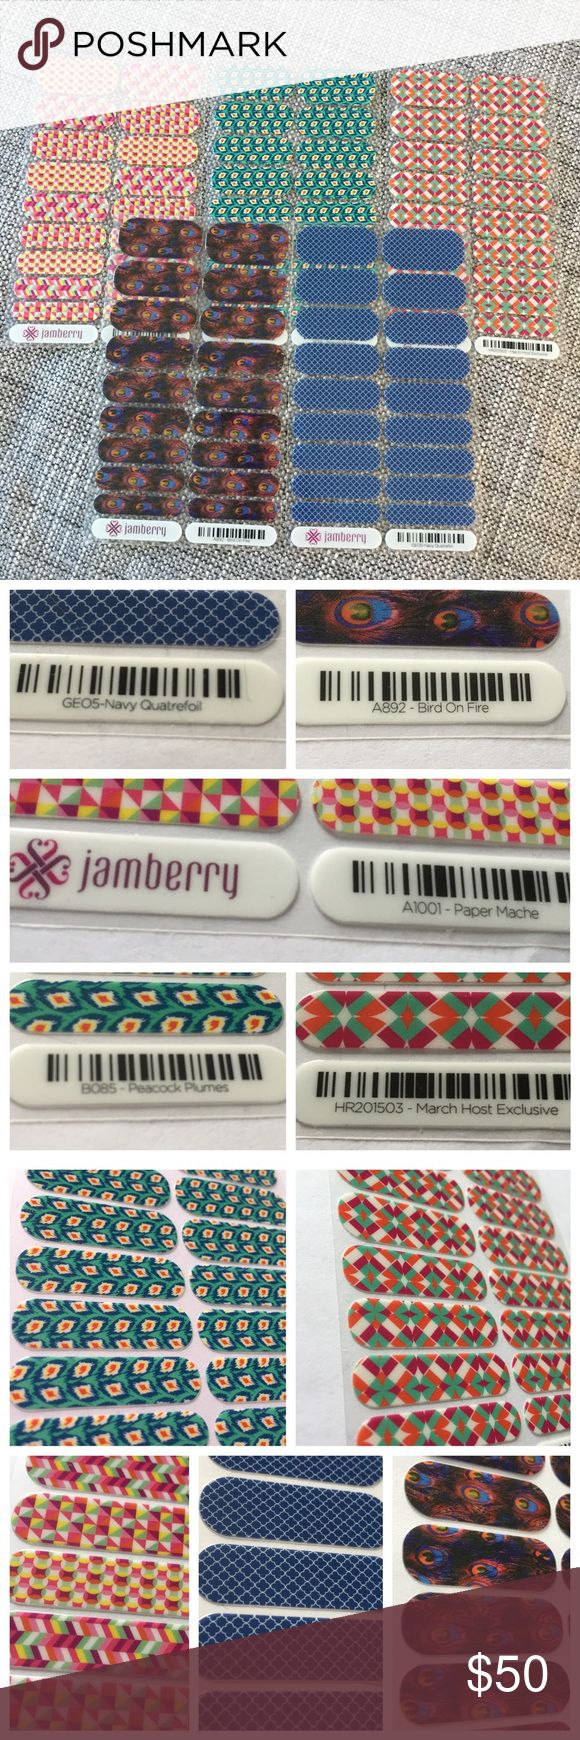 Jamberry Nails Lot of 5 Sheets Glossy Prints This is a lot of 5 Jamberry Nail Sheets! Prints: -Full Navy Quatrefoil -Full Peacock Plumes -Full Bird on Fire -Full Paper Mache  -Full March Hostess Exclusive 2015 Finish: Glossy  Condition: comes without original Jamberry wrapper because they were stored in an album  Non-smoker.  I am always happy to bundle.  I hope you love my closet! Search for my items by size using my hashtag #thecoralseahorse and your preferred size! jamberry Makeup